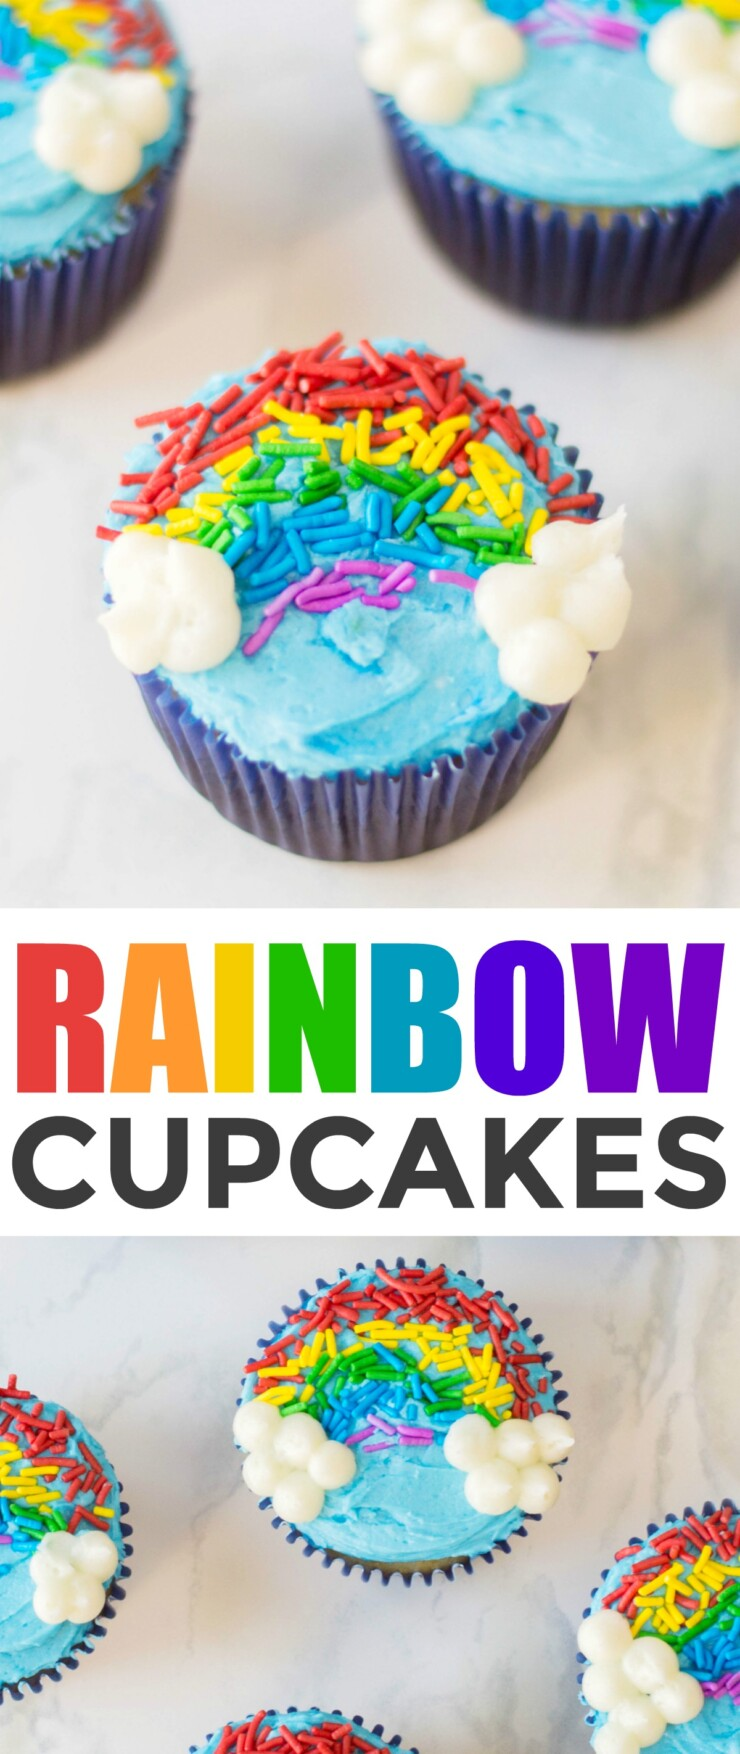 Rainbow sprinkle cupcakes are a cute and easy treat that are perfect for classroom St. Patrick's Day parties. Kids are sure to love these bright and colourful cupcakes!